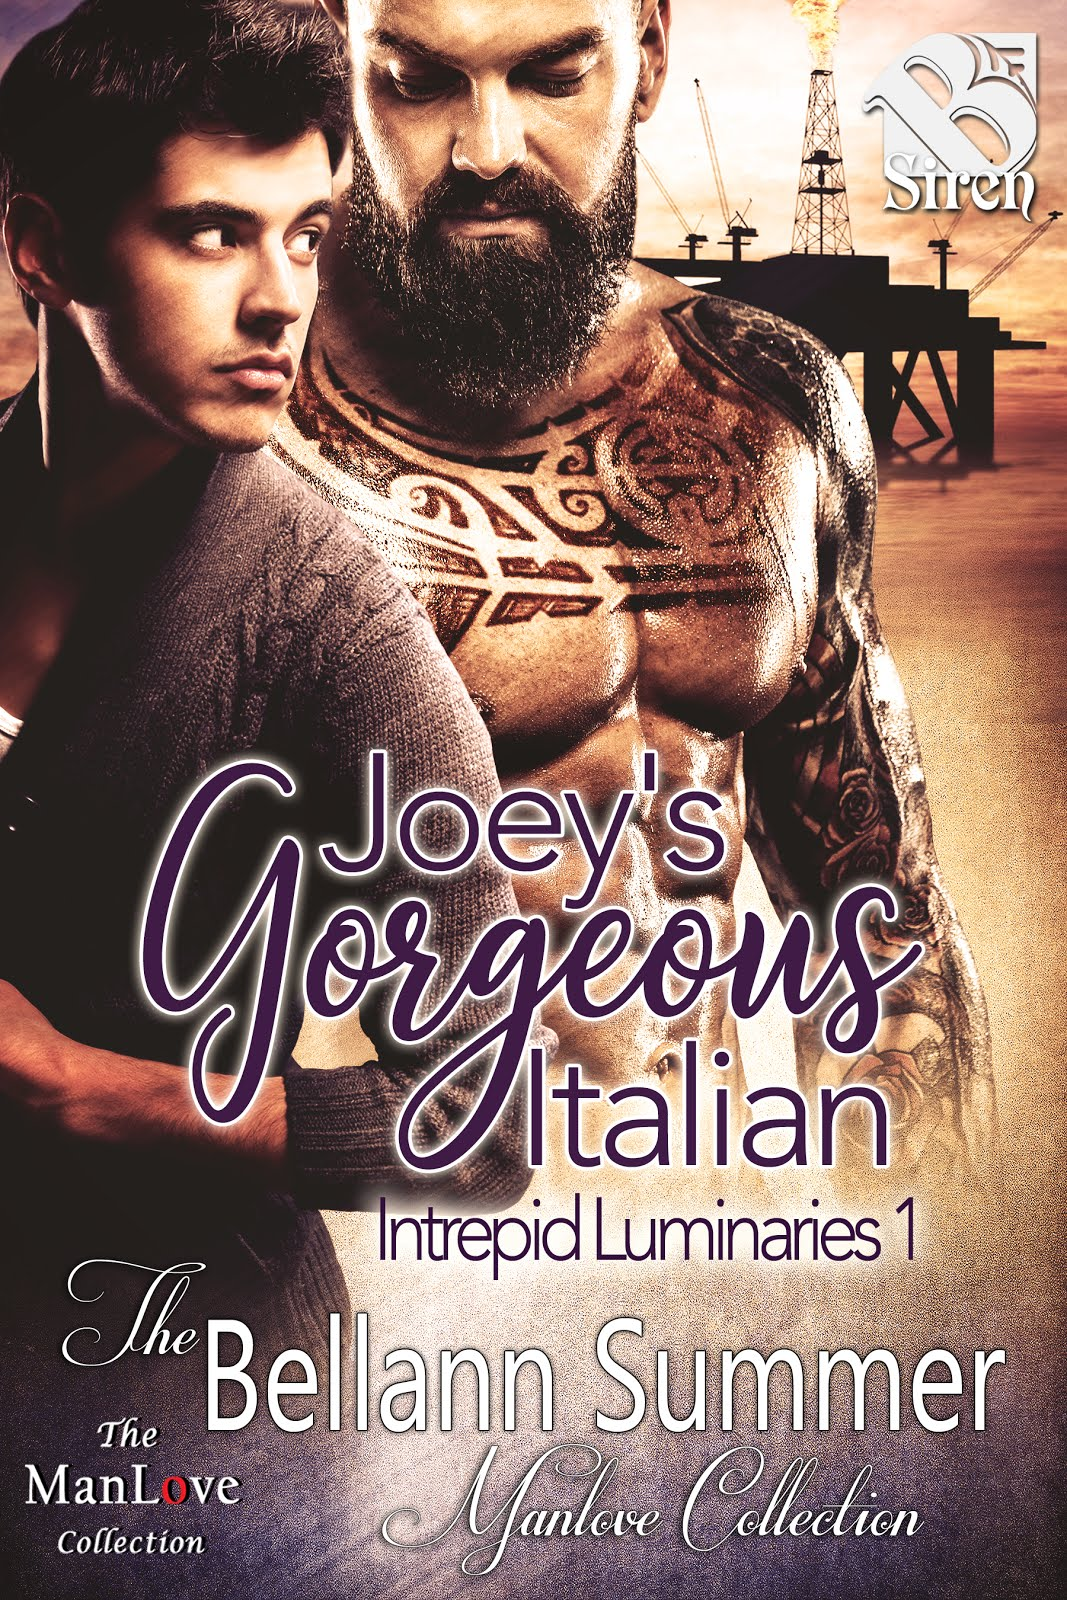 Joey's Gorgeous Italian (Intrepid Luminaries)